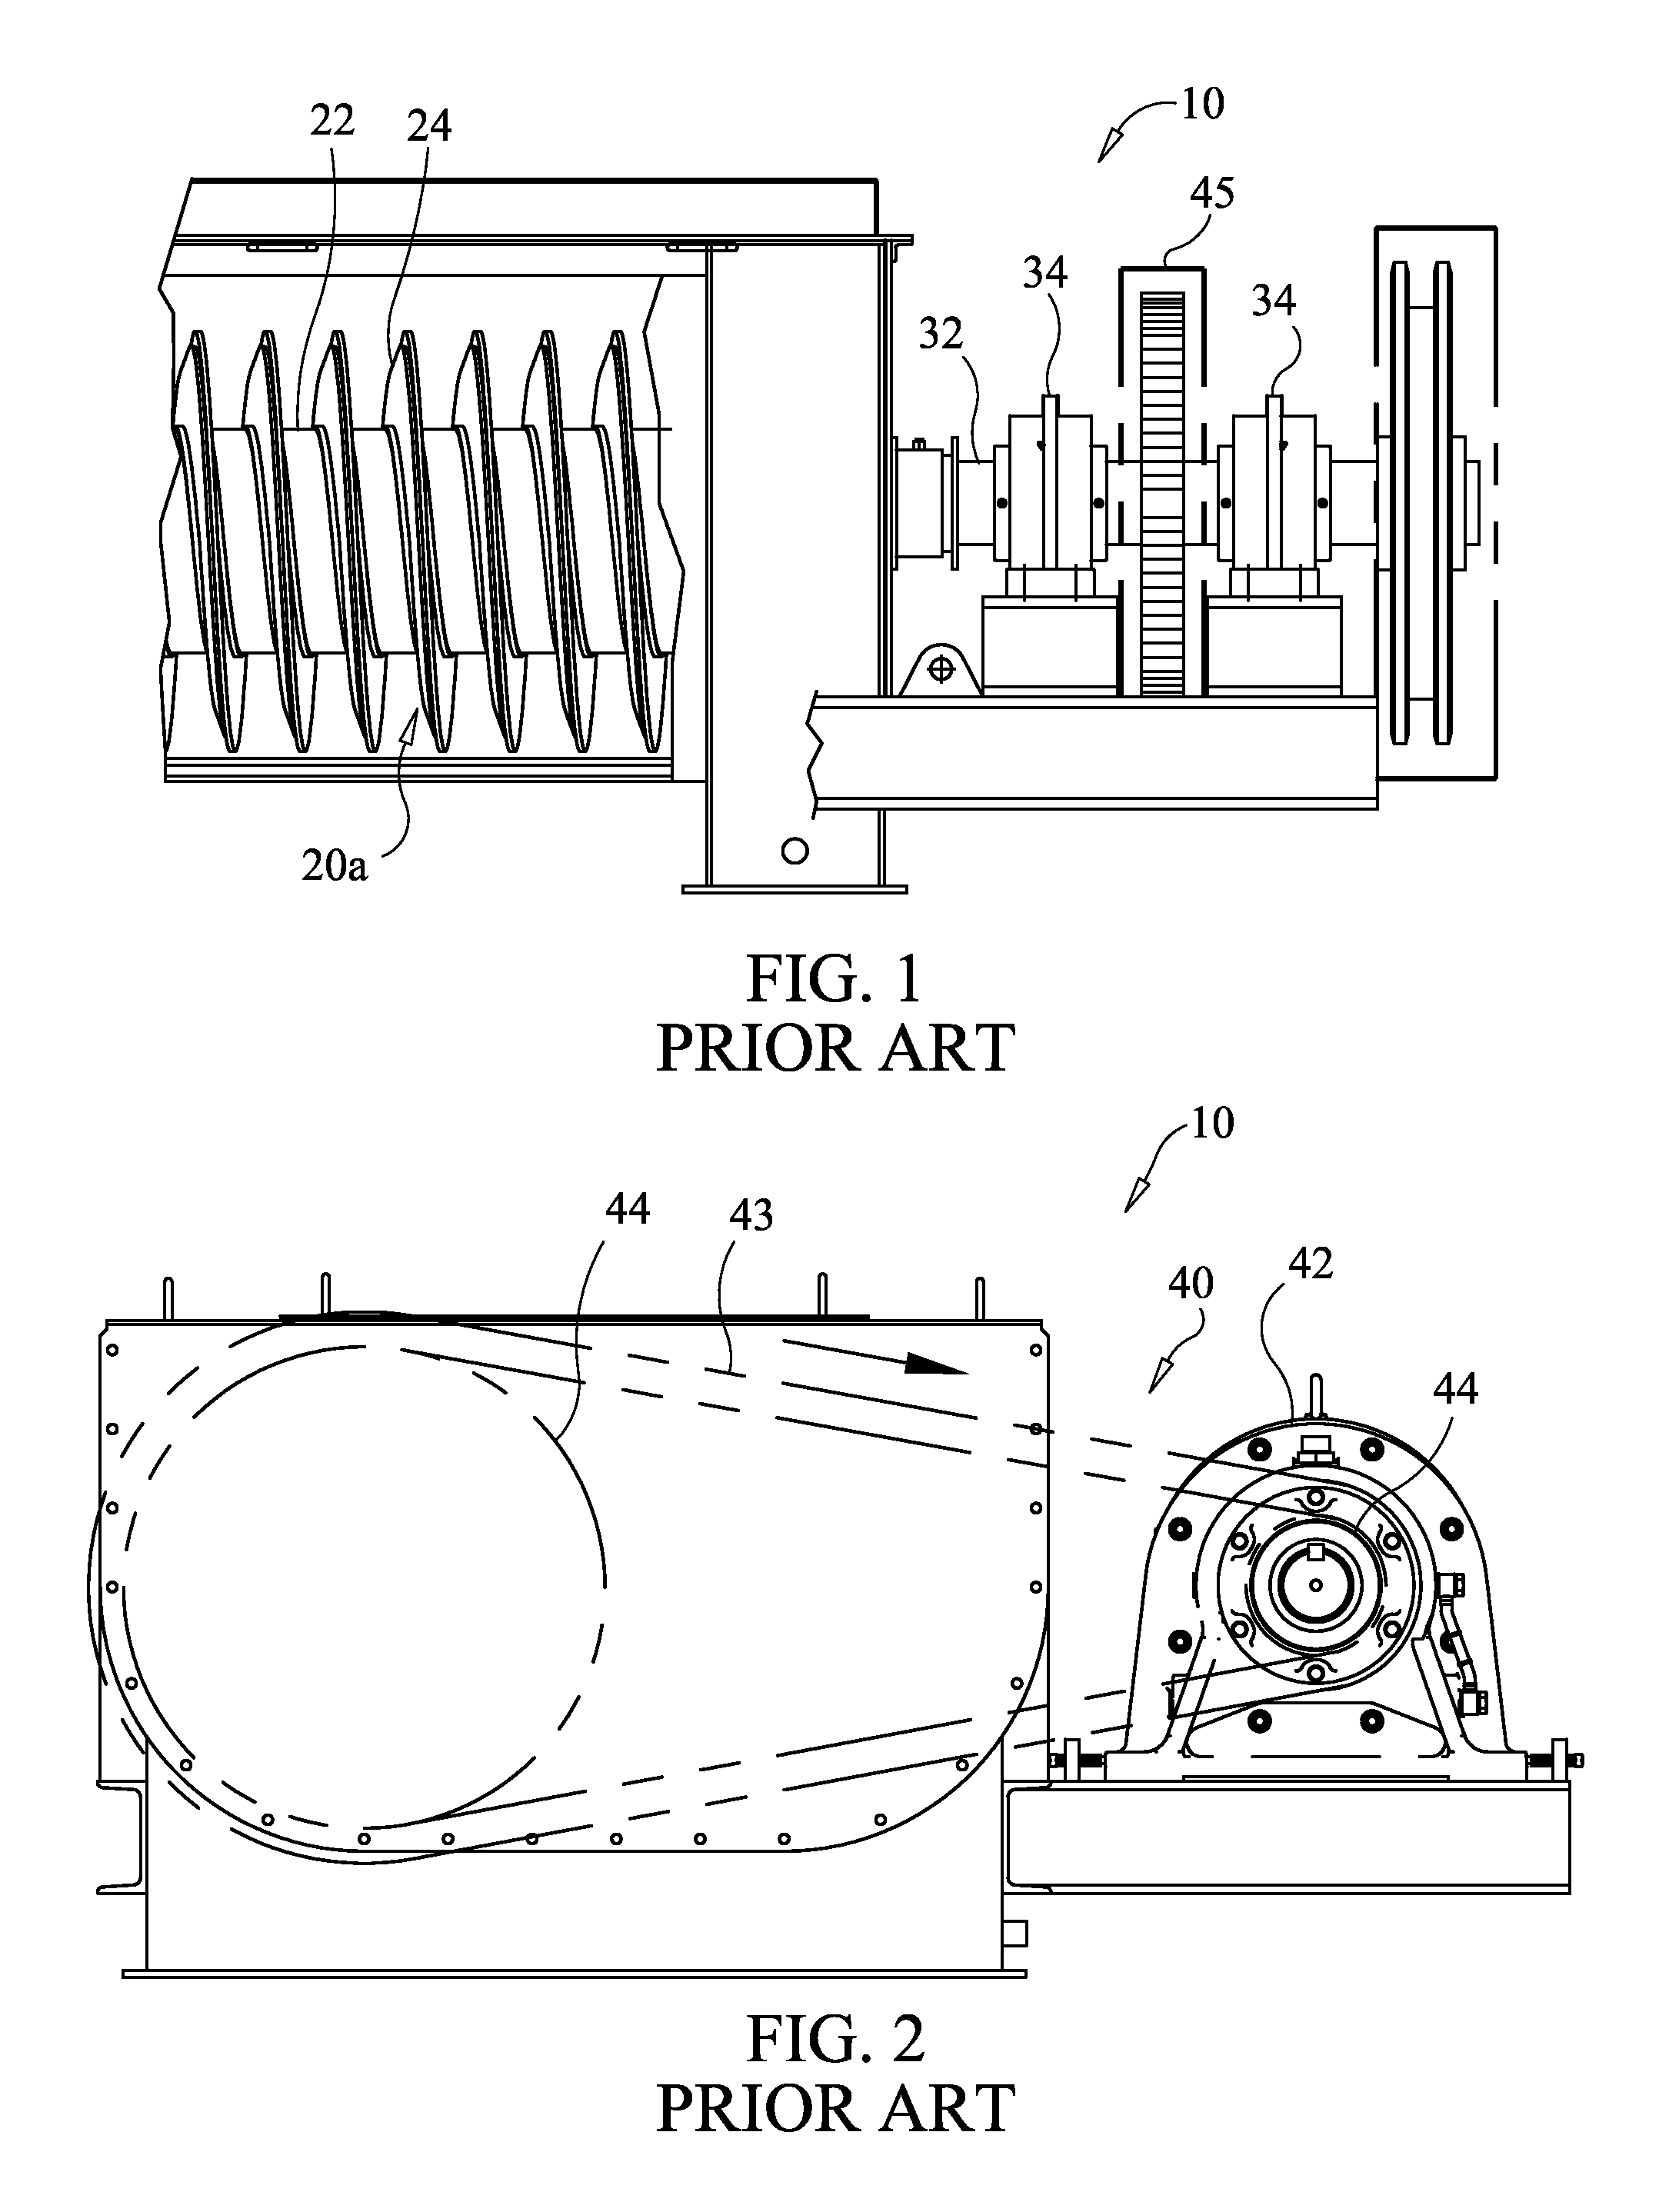 Invoice Word Patent Us  Screwtype Heatexchanger System With  S P Depository Receipts Pdf with Tiramisu Receipt Excel Patent Drawing Rent Receipt Template India Pdf